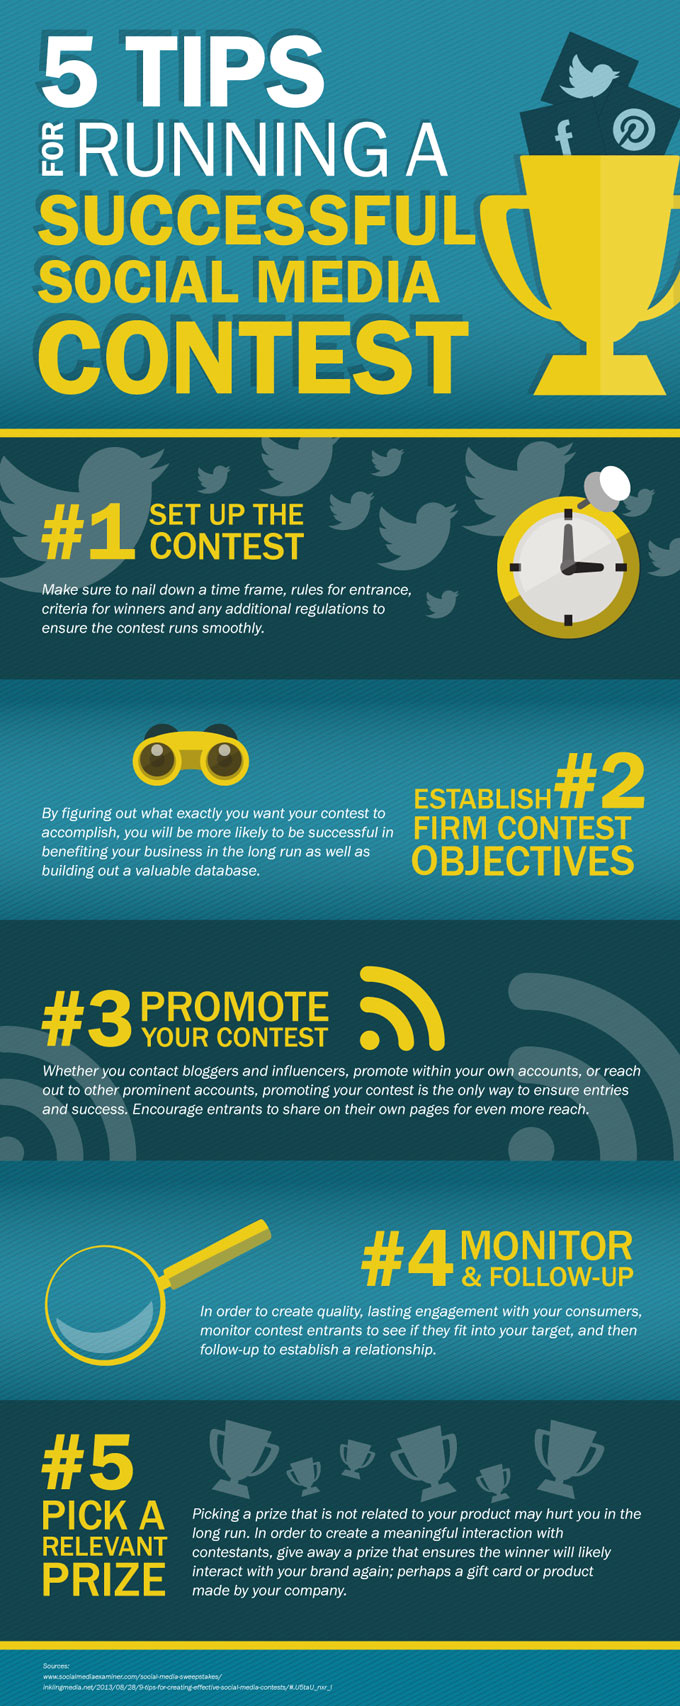 Social media contest infographic